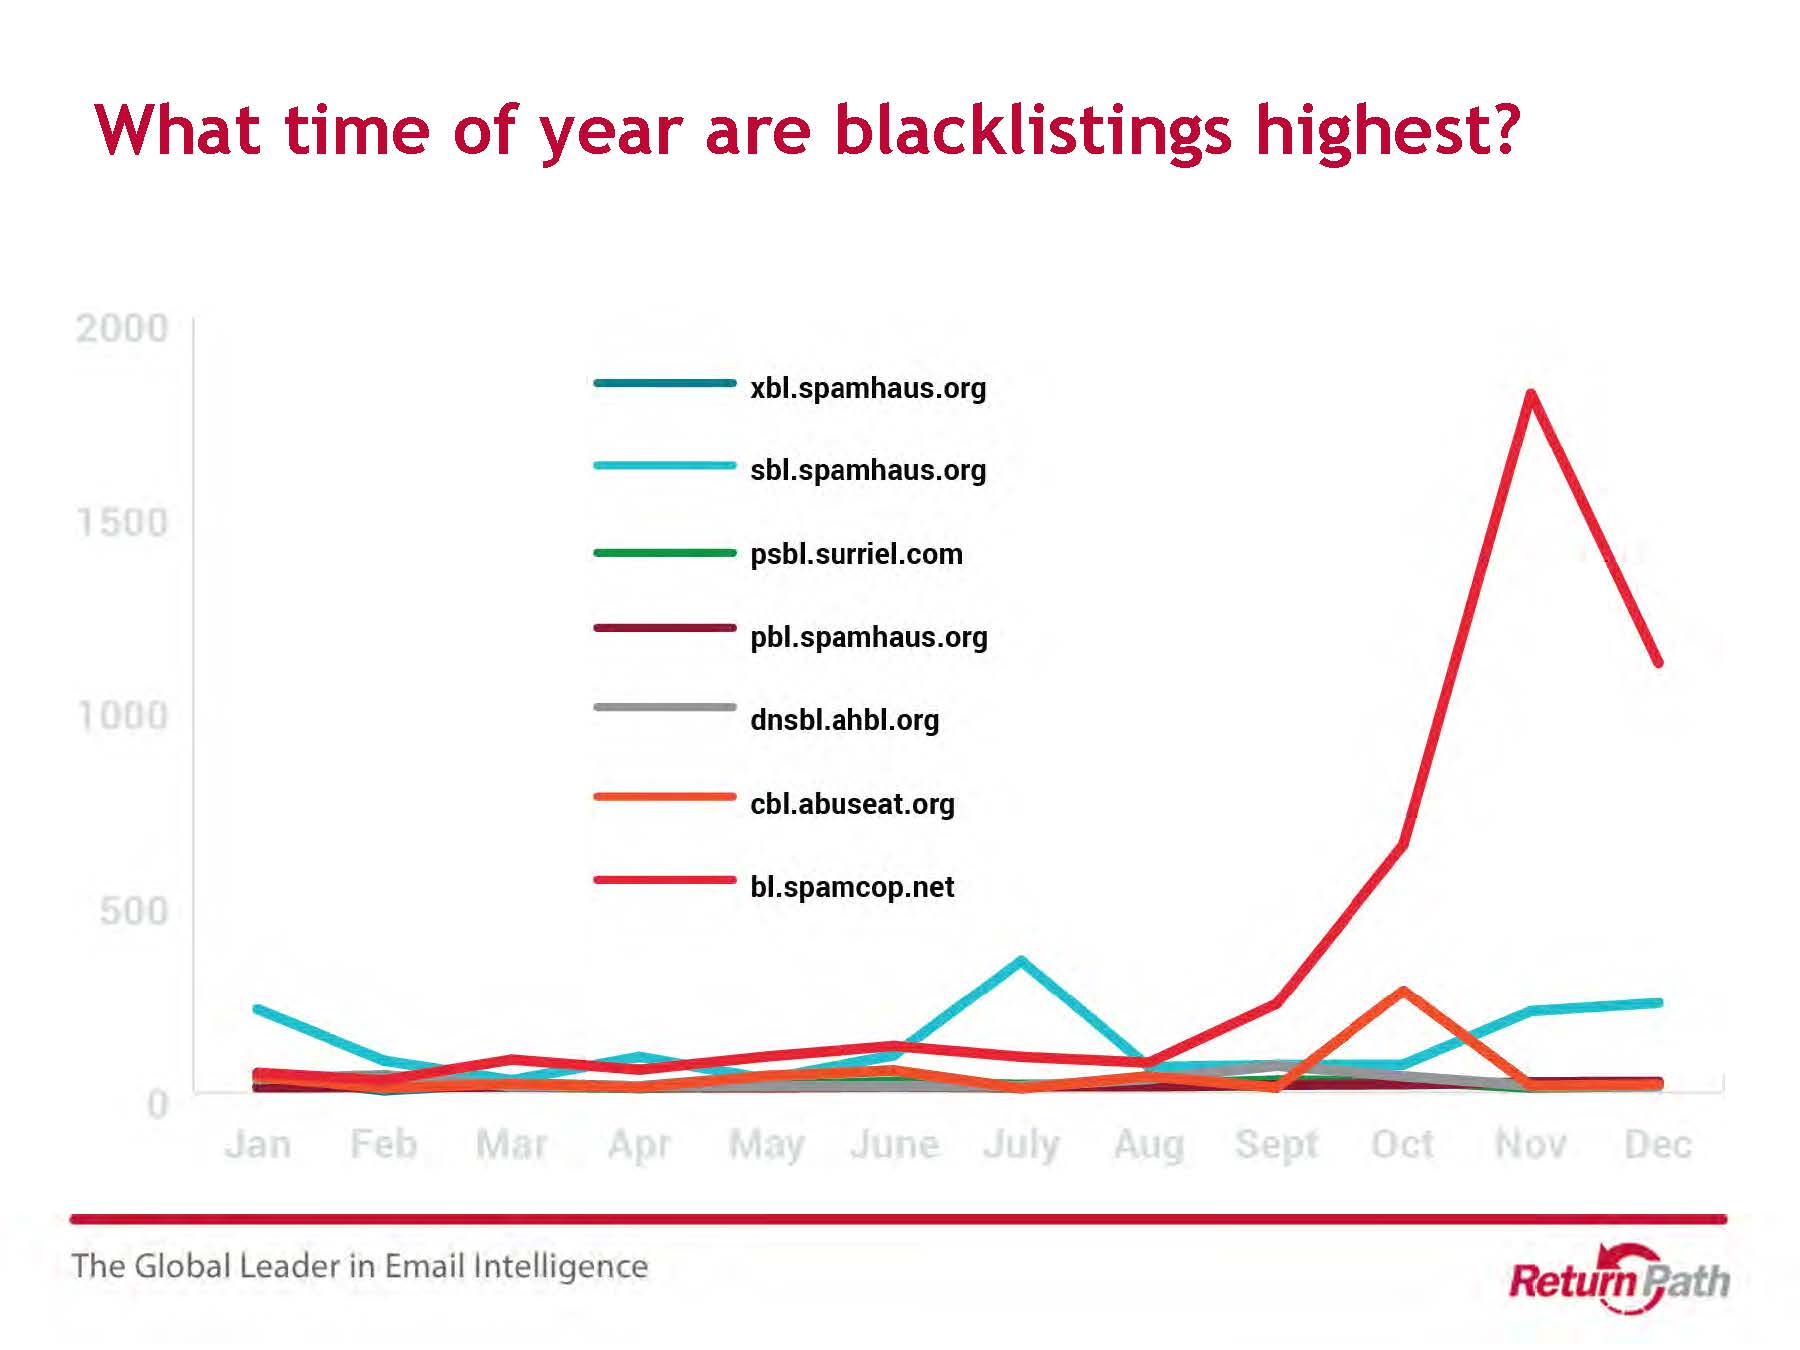 What time of year are blacklistings highest?